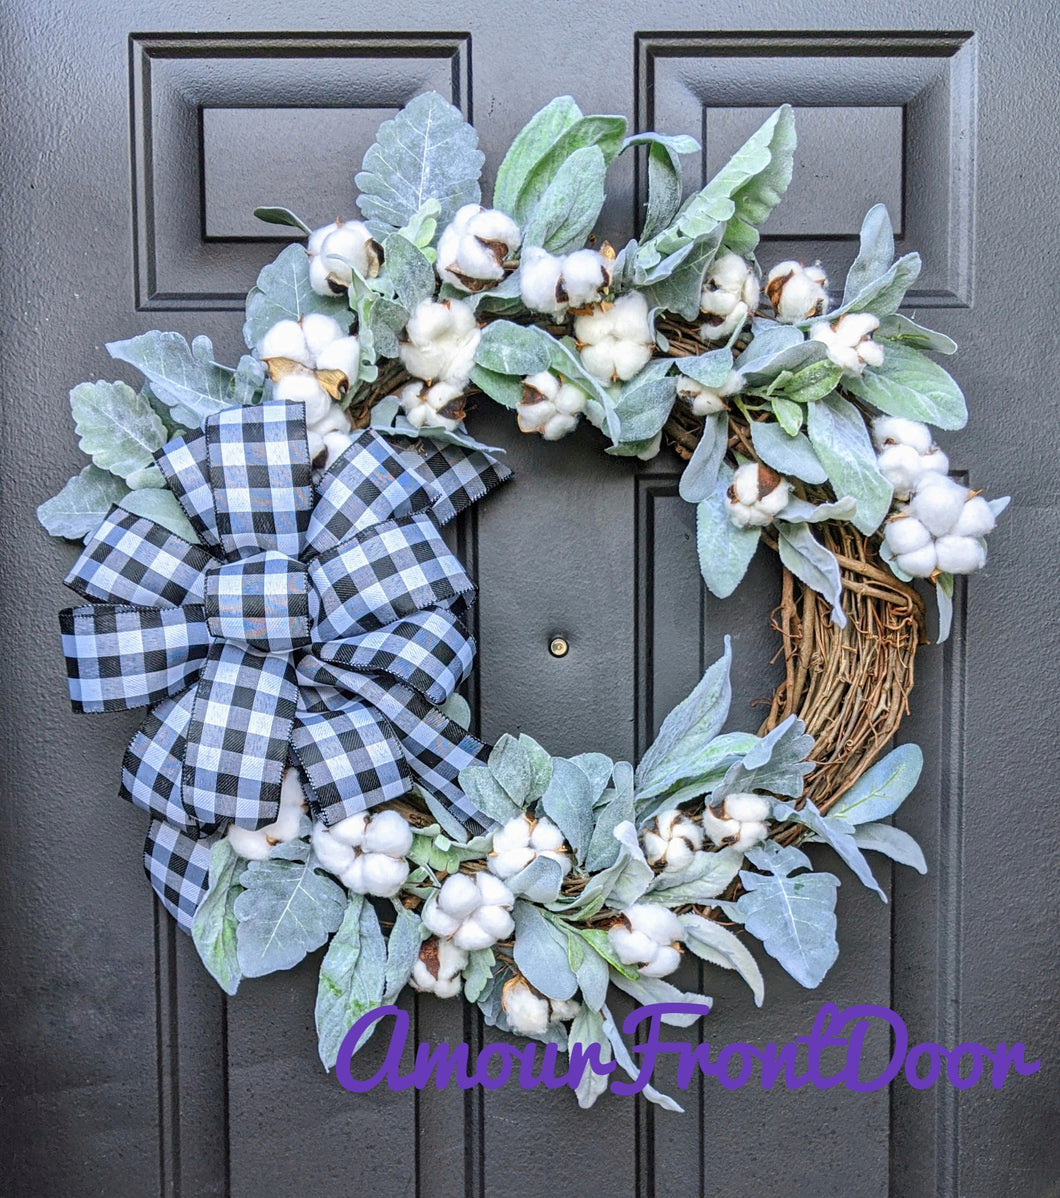 Welcome Lamb's Ear Grapevine Wreath - Custom Wreath